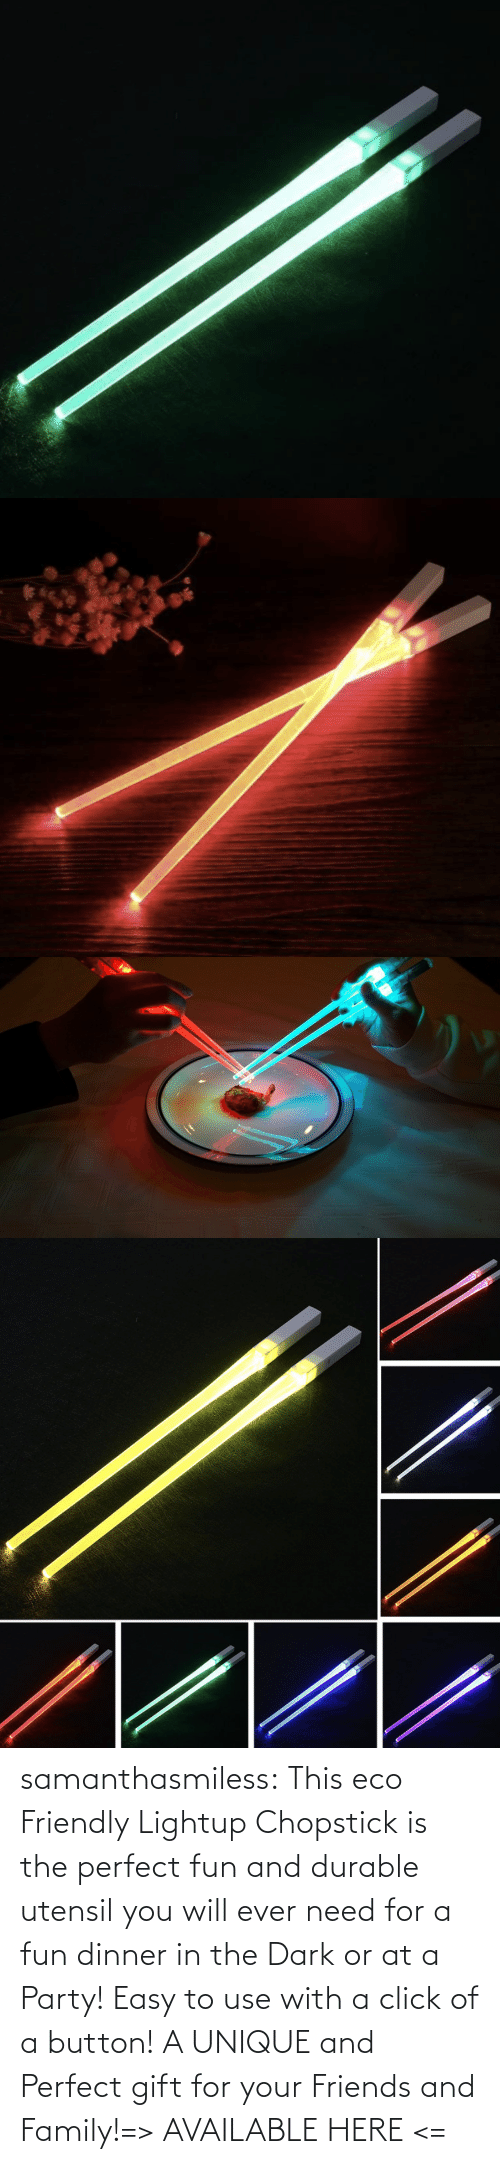 Click, Family, and Friends: samanthasmiless:  This eco Friendly Lightup Chopstick is the perfect fun and durable utensil you will ever need for a fun dinner in the Dark or at a Party! Easy to use with a click of a button! A UNIQUE and Perfect gift for your Friends and Family!=> AVAILABLE HERE <=